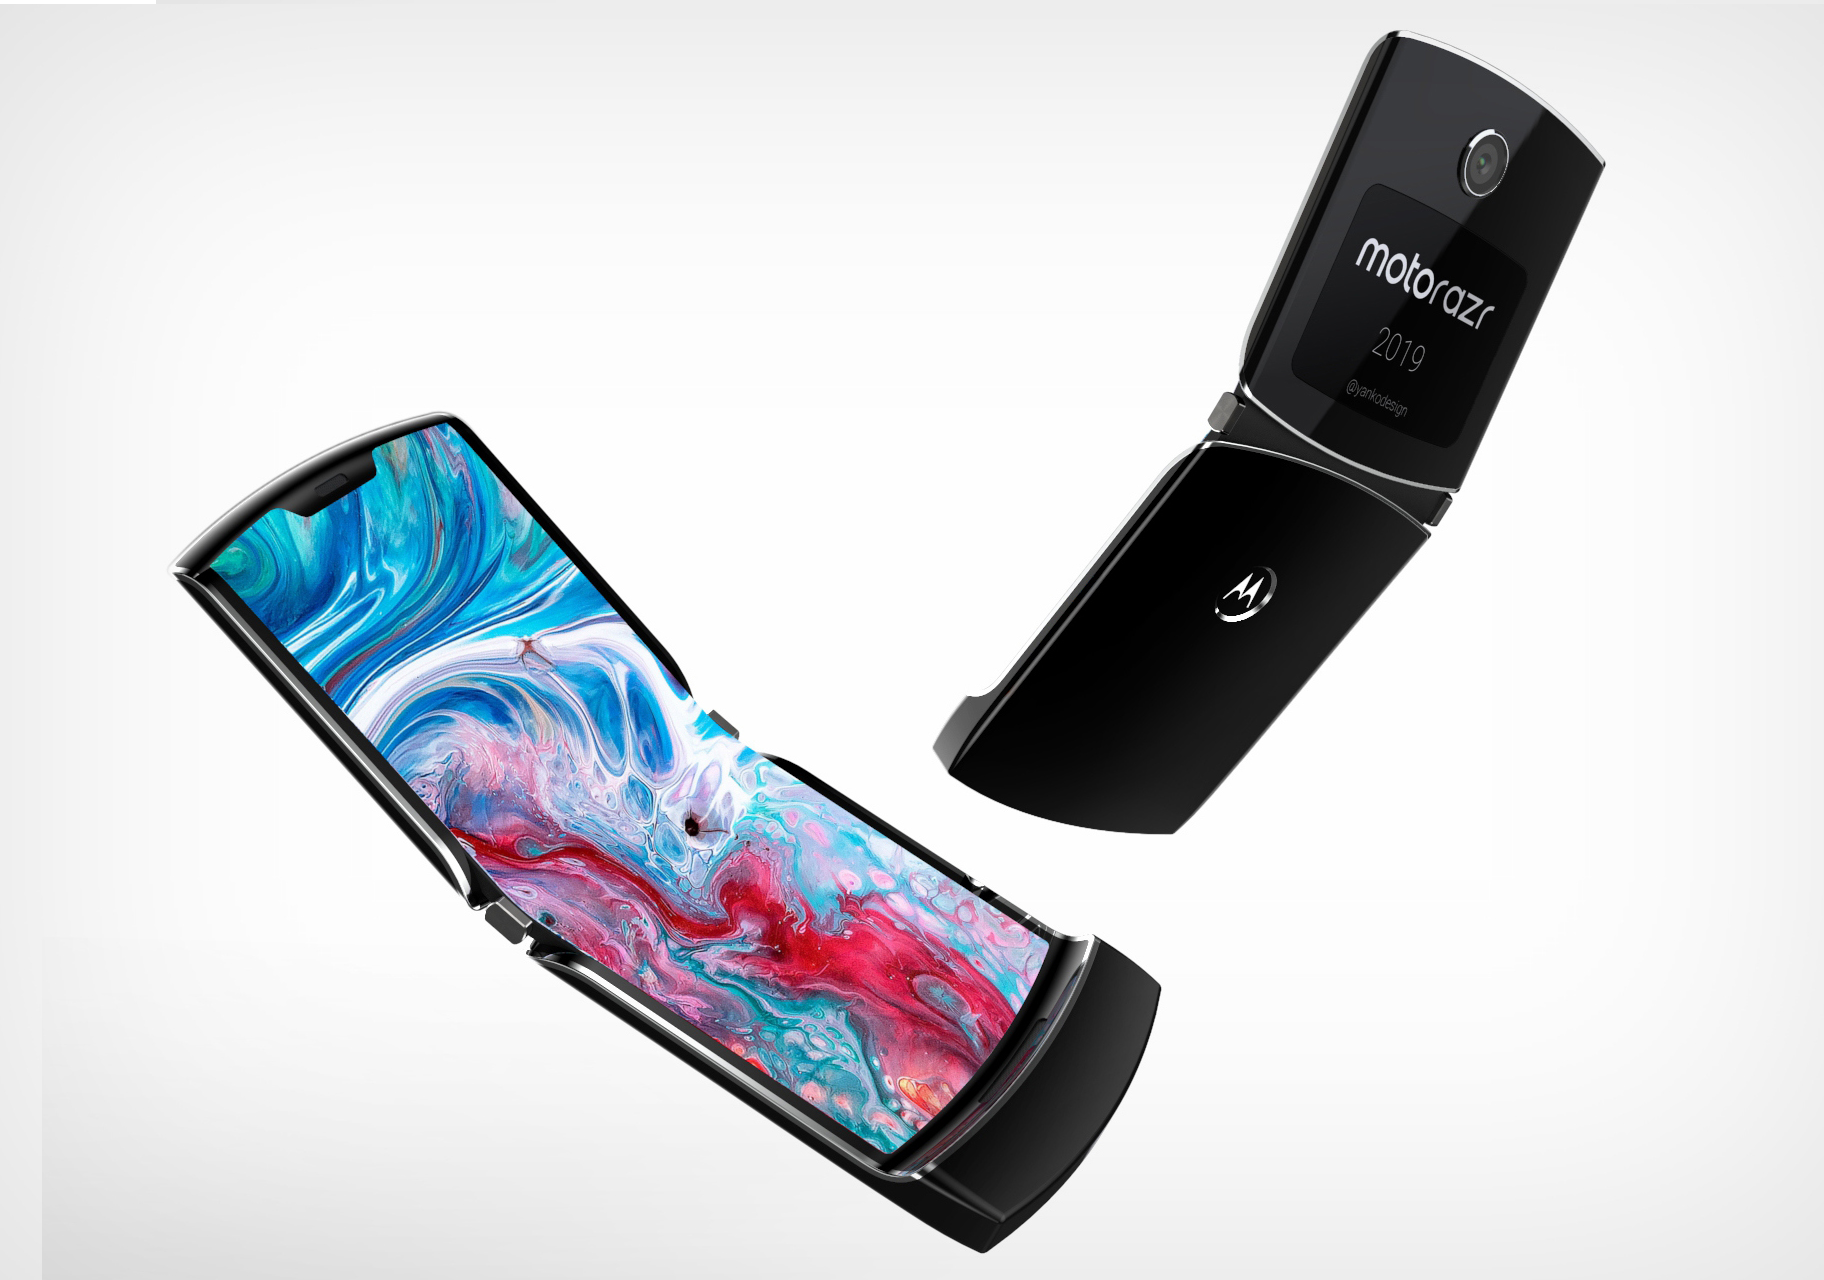 Motorola Razr 2019 will be a mid-ranger rather than a flagship, specs leak suggests